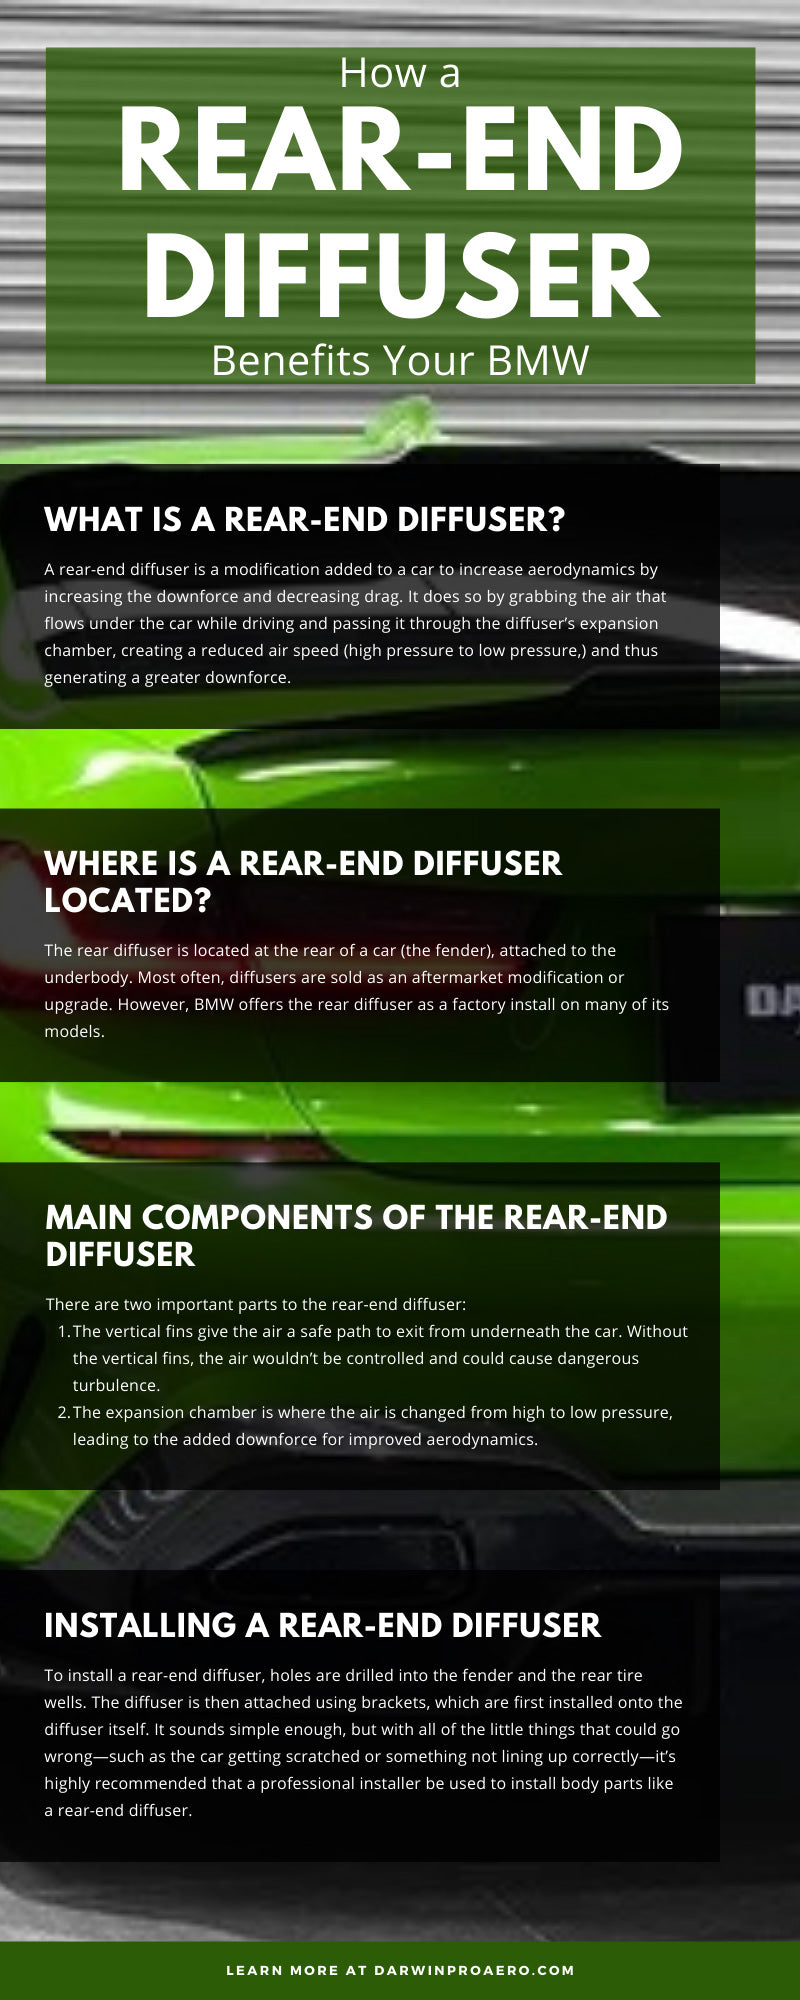 How a Rear-End Diffuser Benefits Your BMW